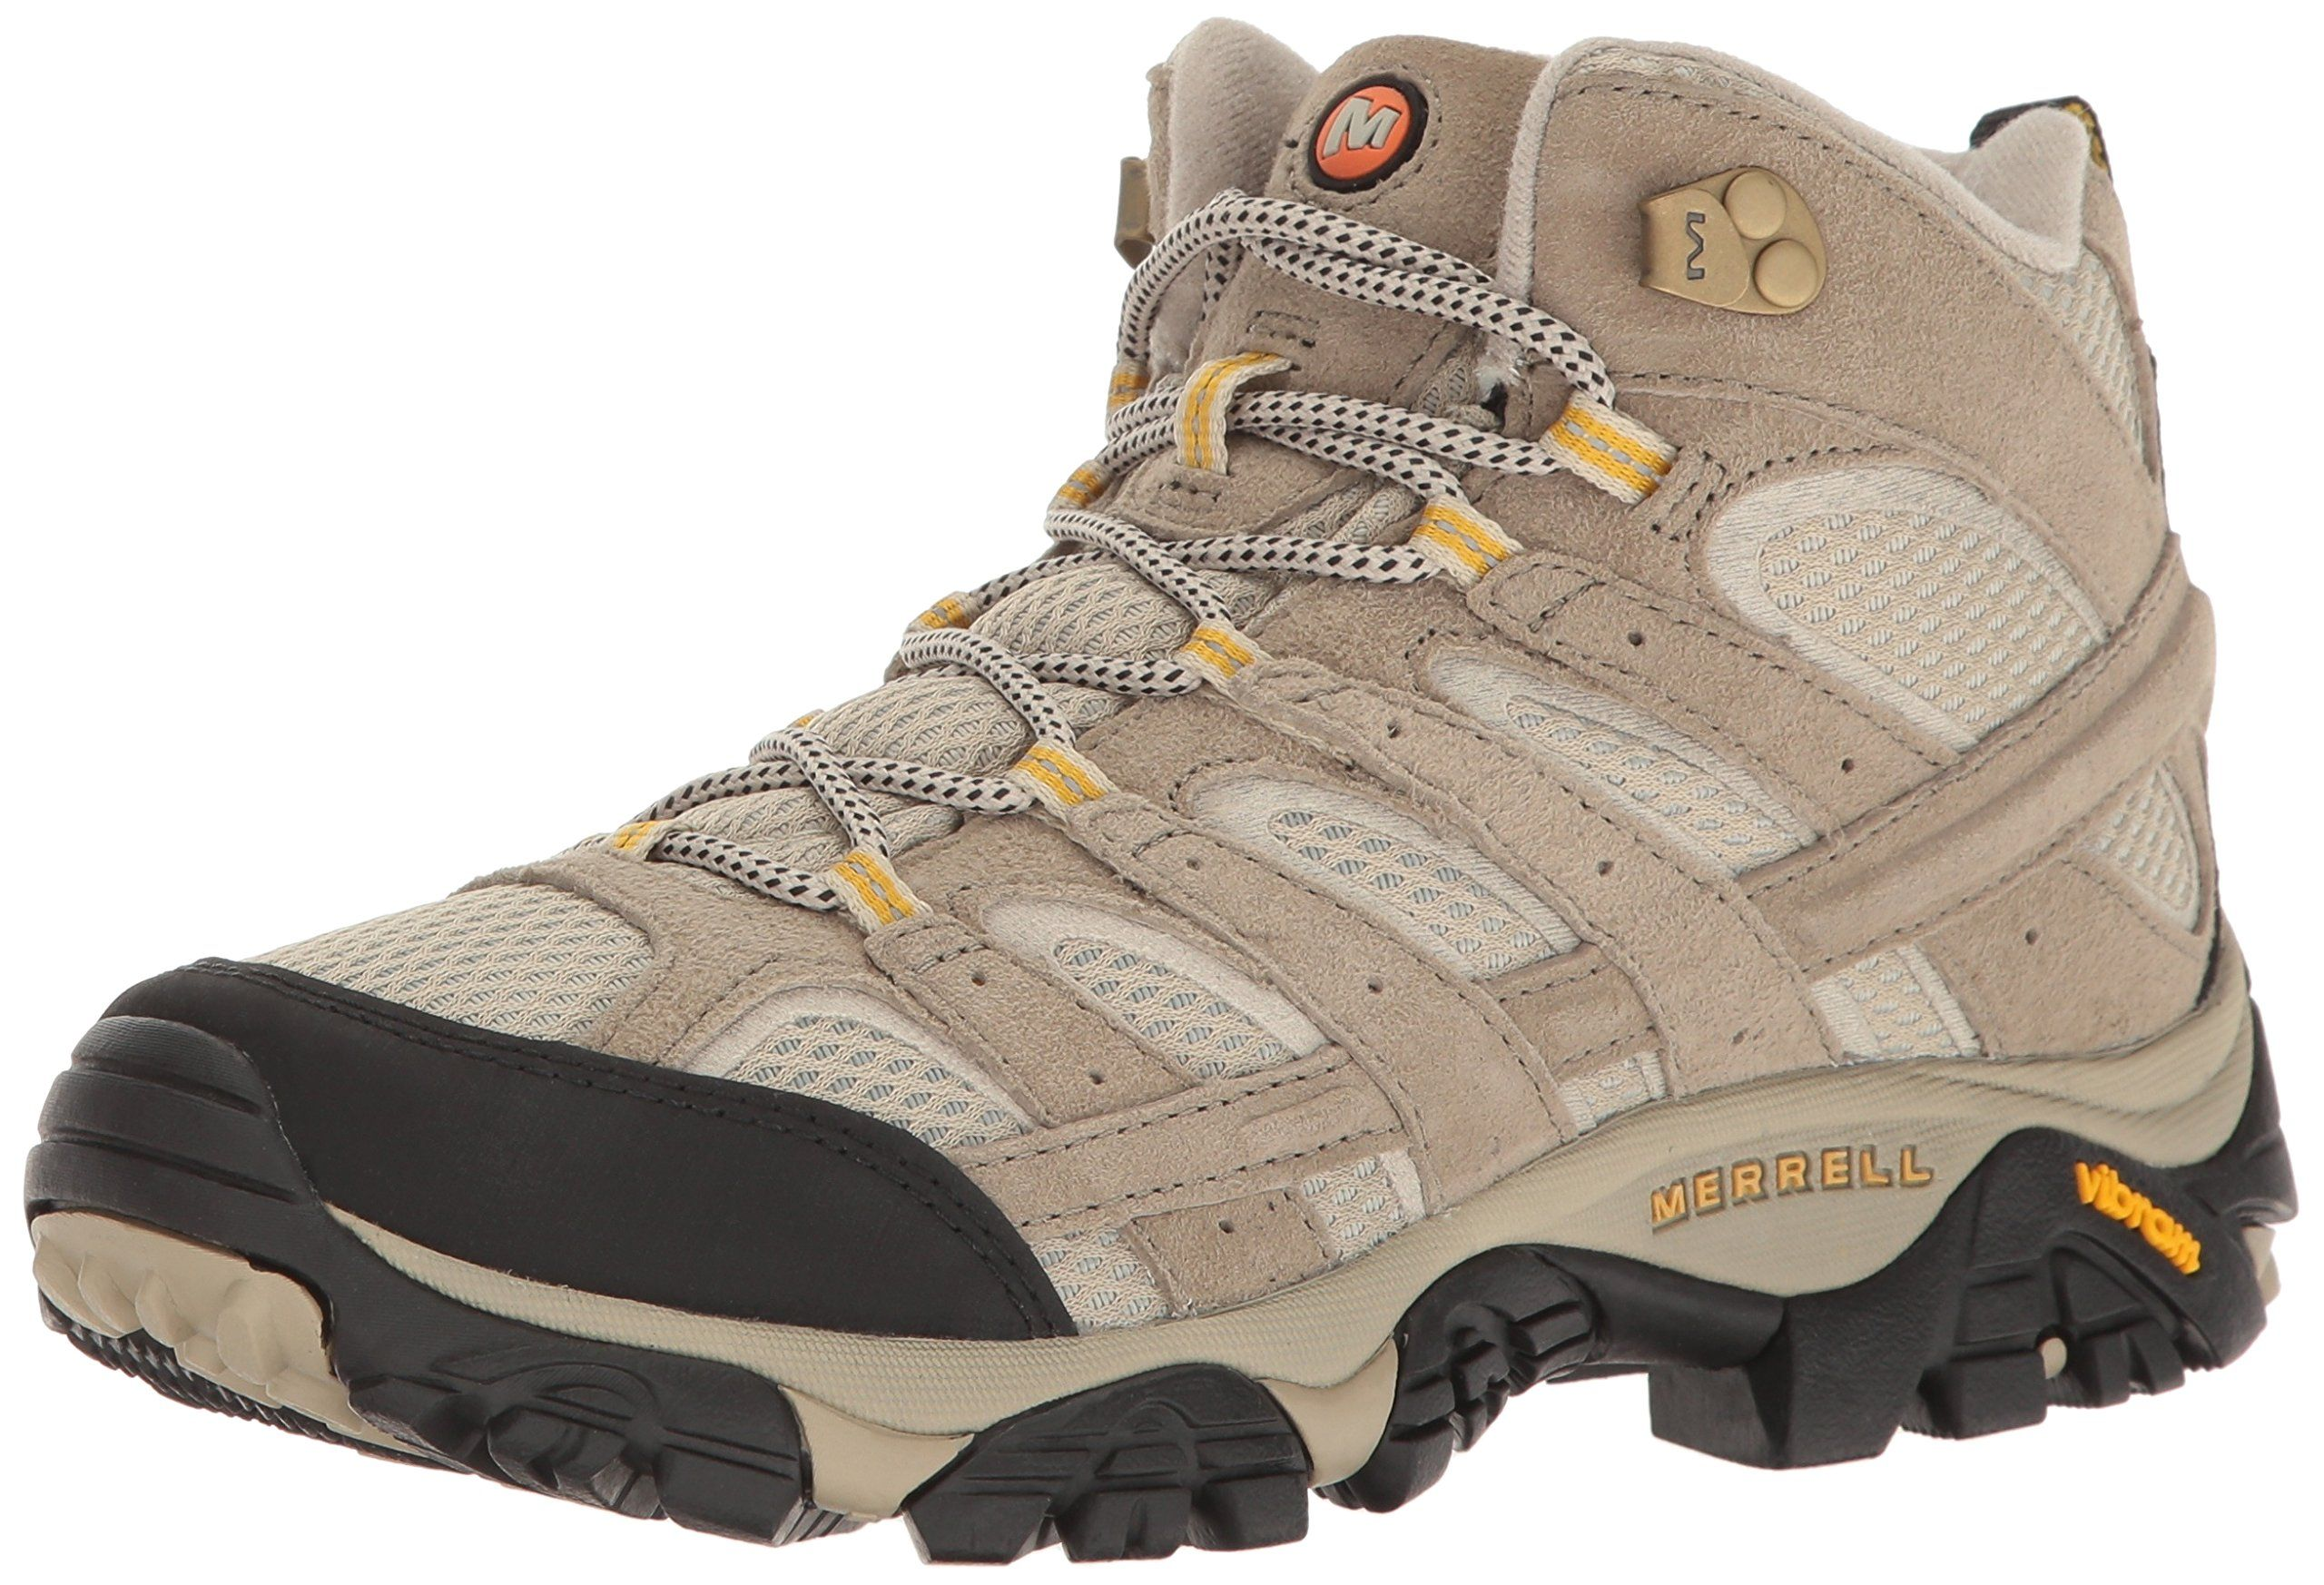 Merrell Women's Moab 2 Vent Mid Hiking Boot, Taupe, 6 W US